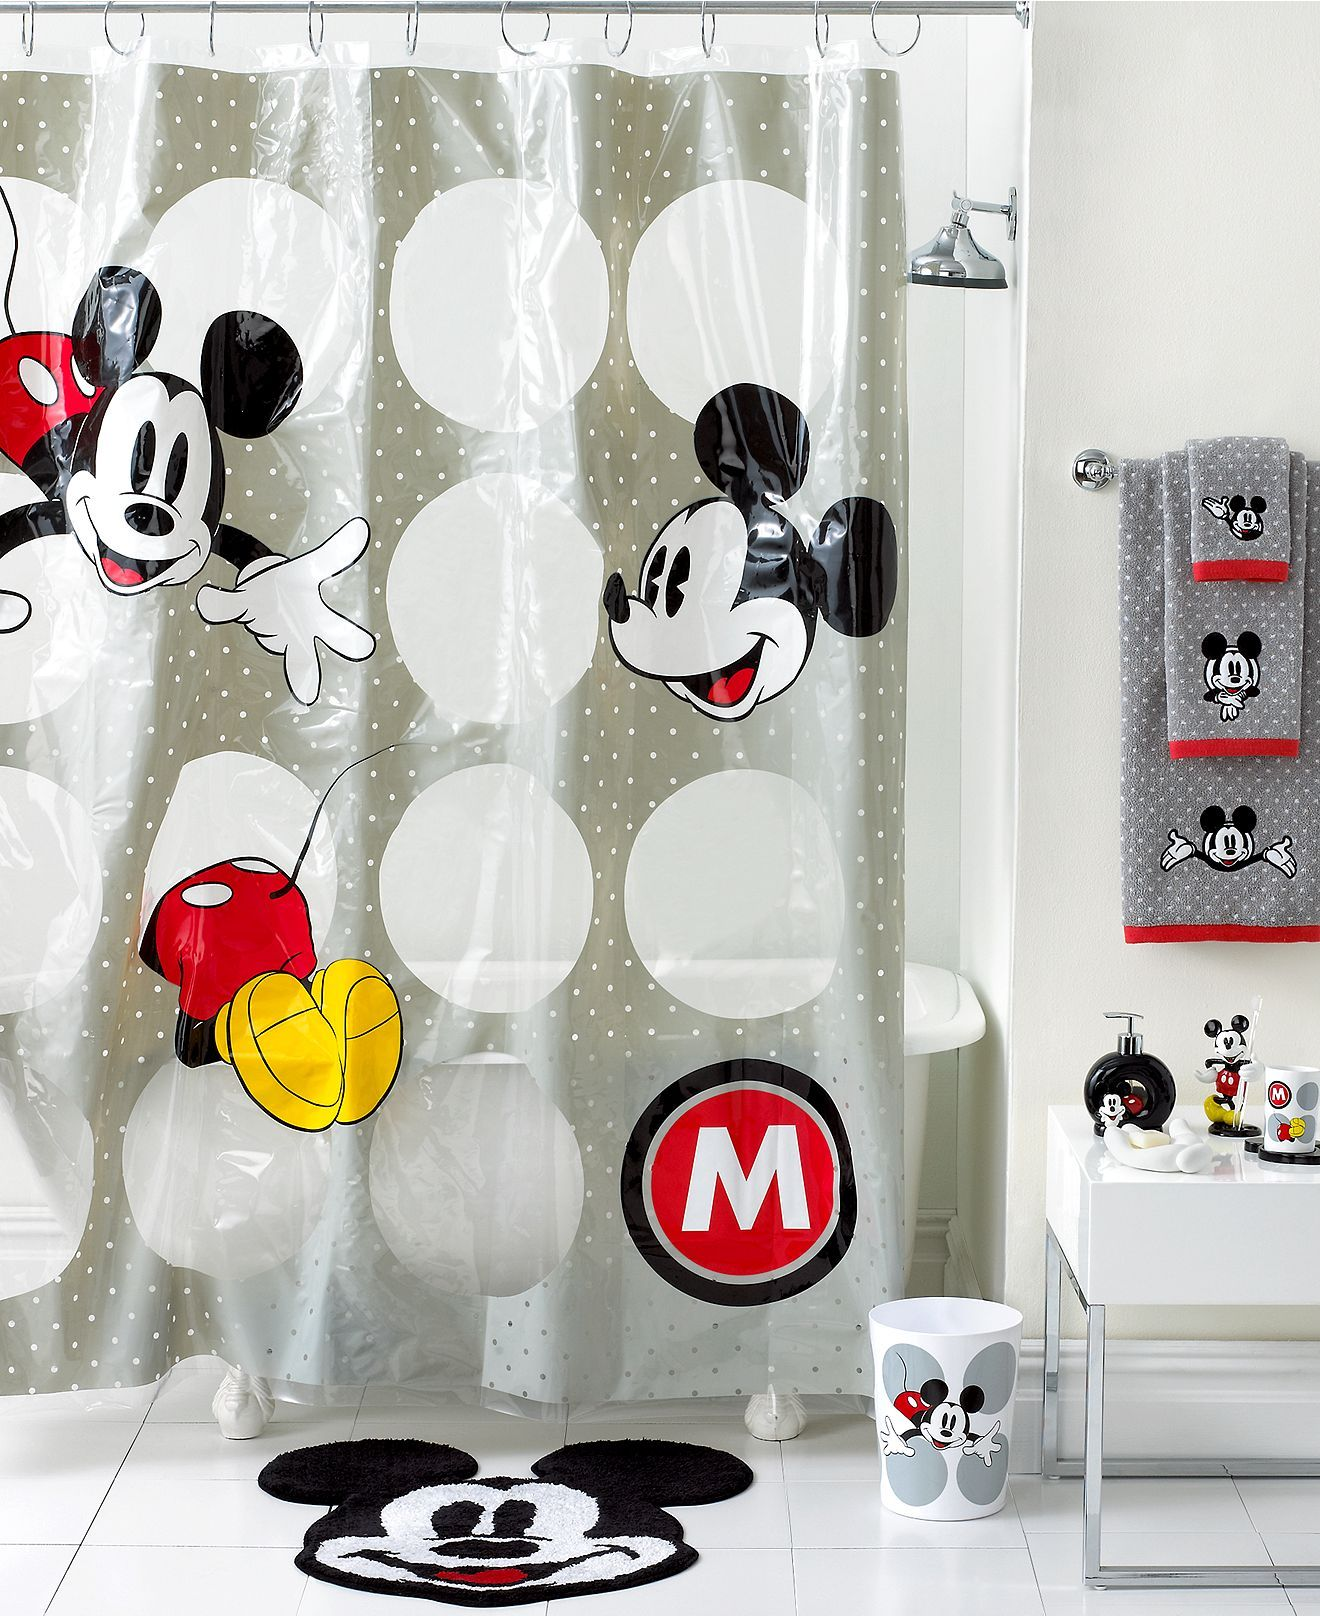 Merveilleux Disney Bath Accessories, Disney Mickey Mouse Shower Curtain   I Know What  Iu0027ll